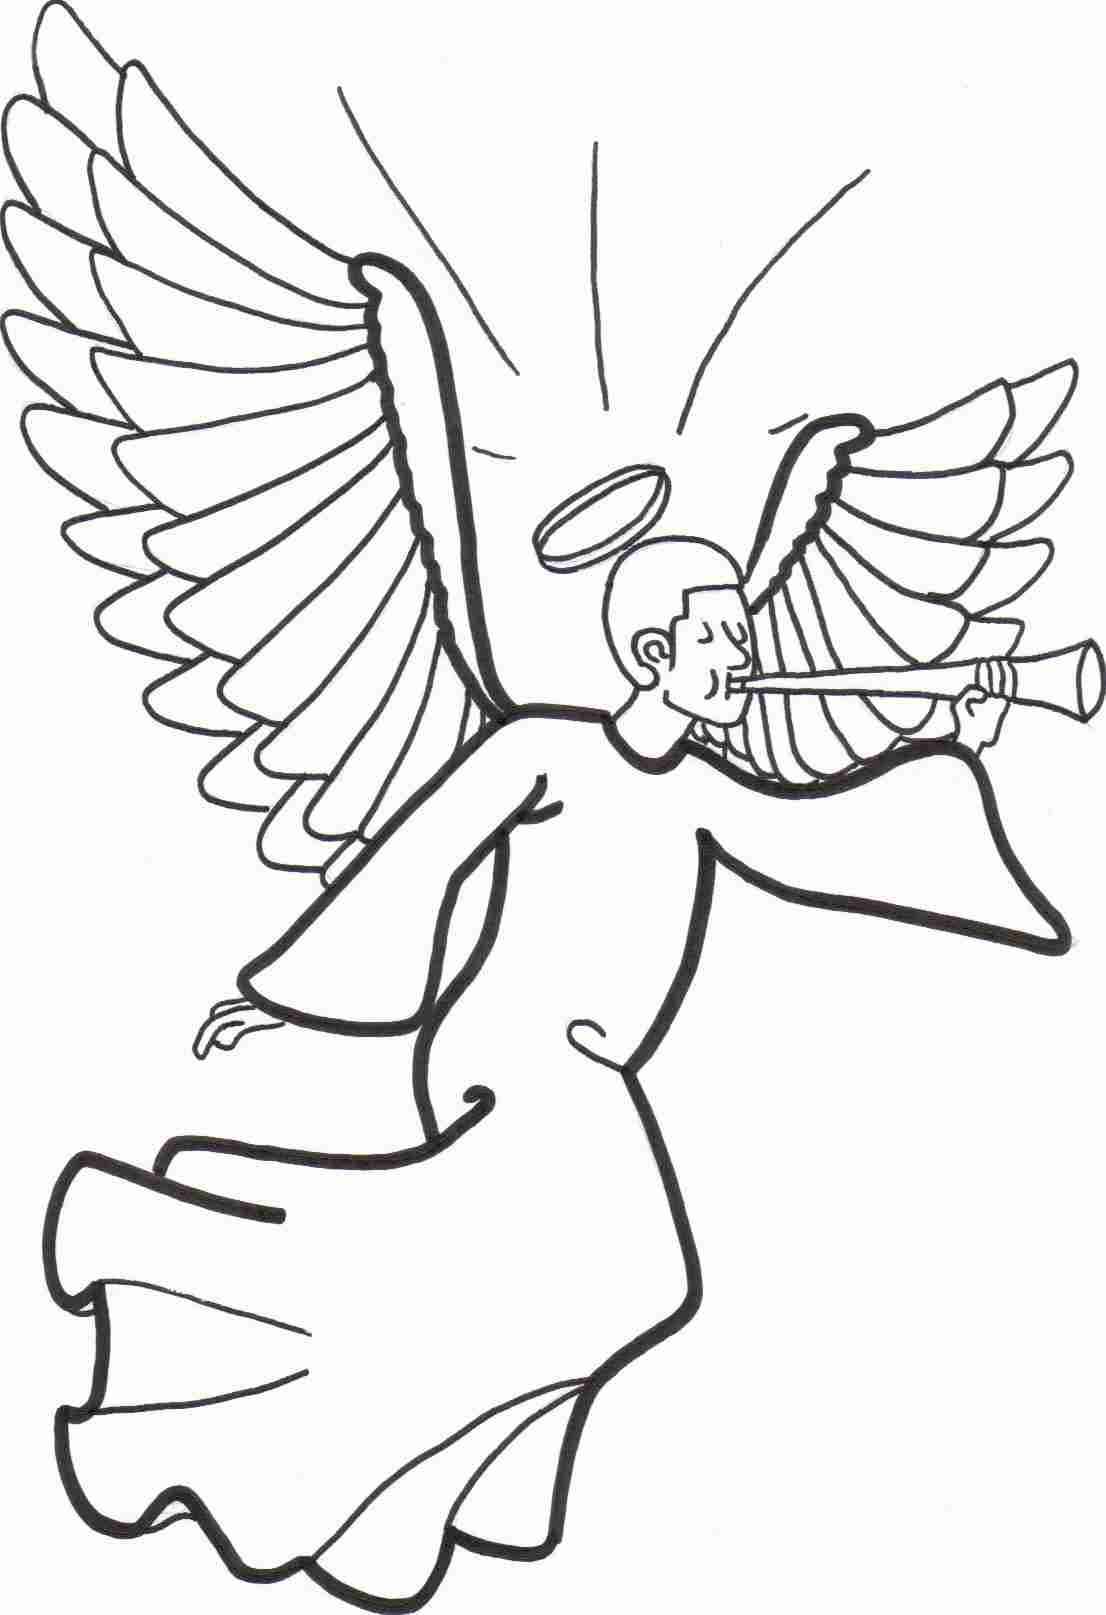 colouring pictures of angels free printable angel coloring pages for kids of pictures colouring angels